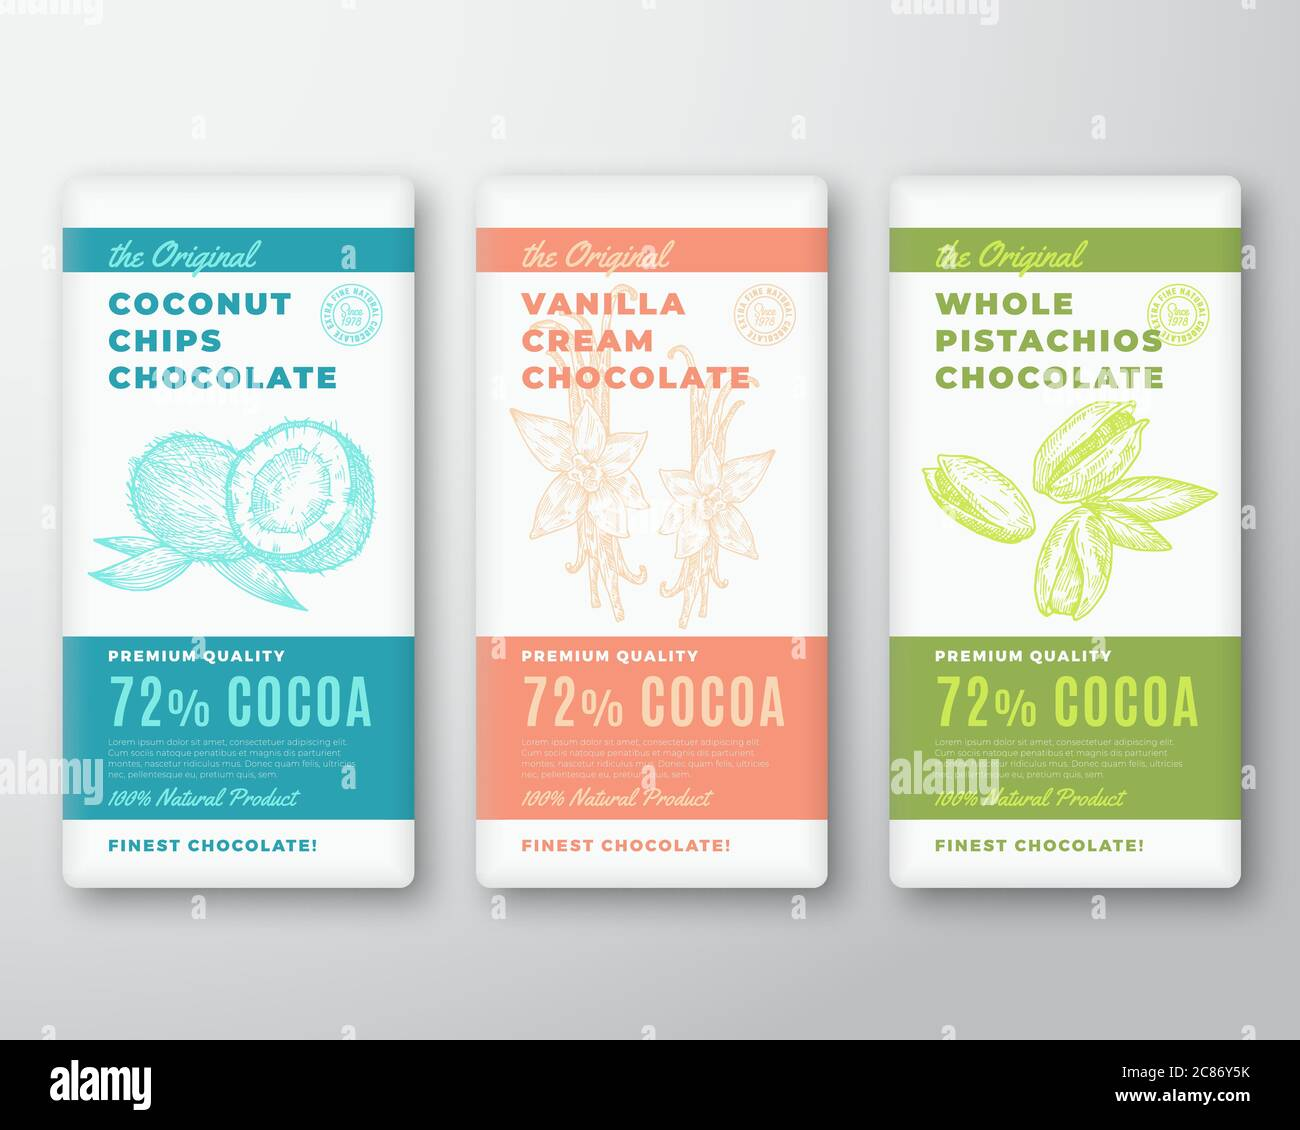 The Original Finest Cocoa Chocolate Bar Abstract Vector Packaging